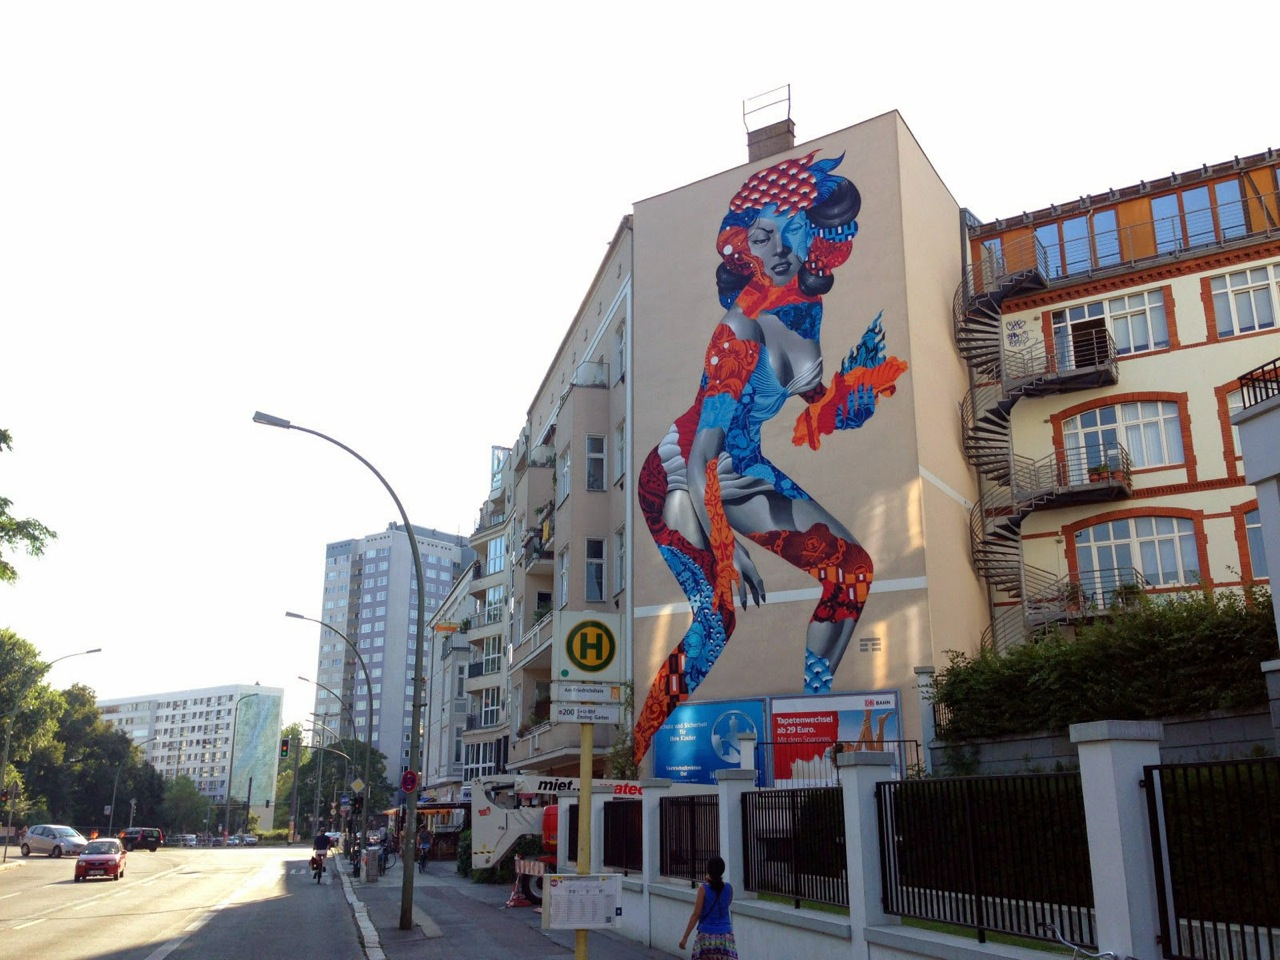 Tristan Eaton in Berlin for the One Wall project. Photo via StreetArtNews.